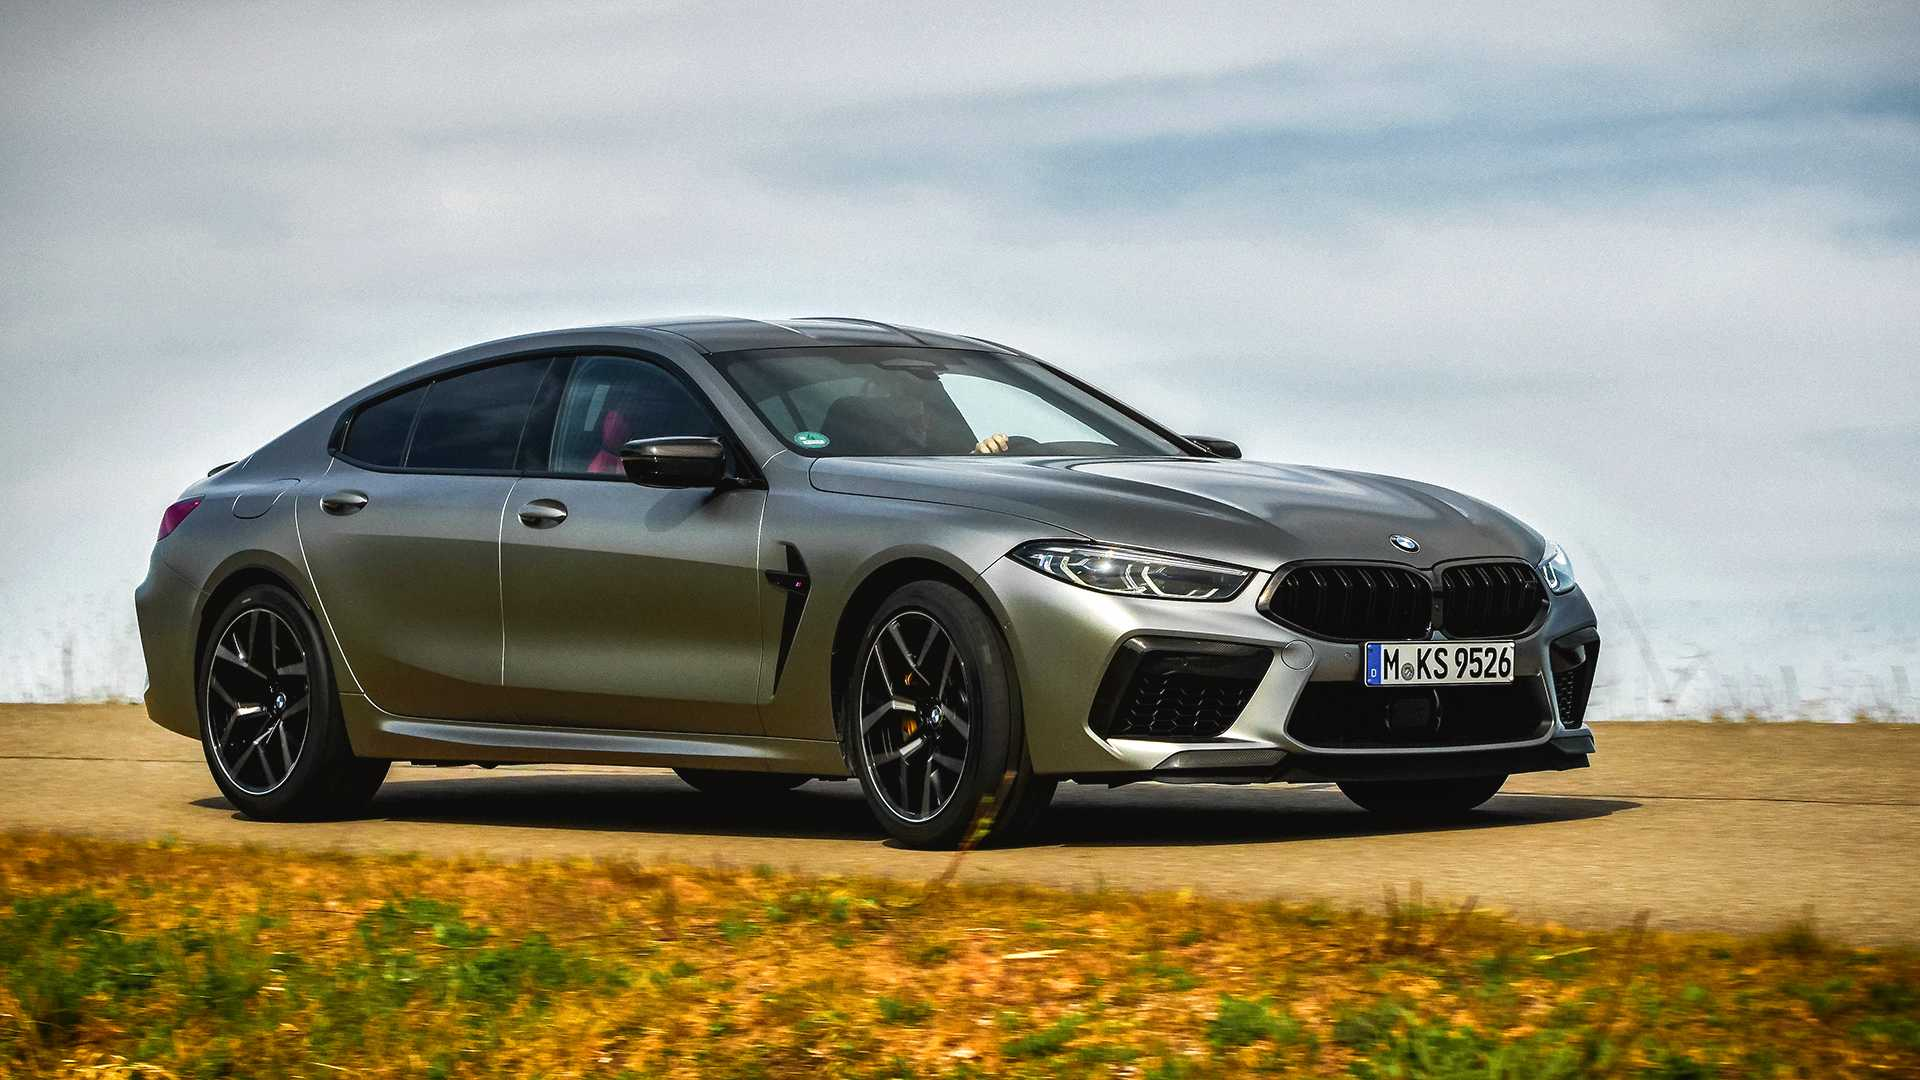 2020 Bmw M8 Gran Coupe First Drive Review Better Than The Competition